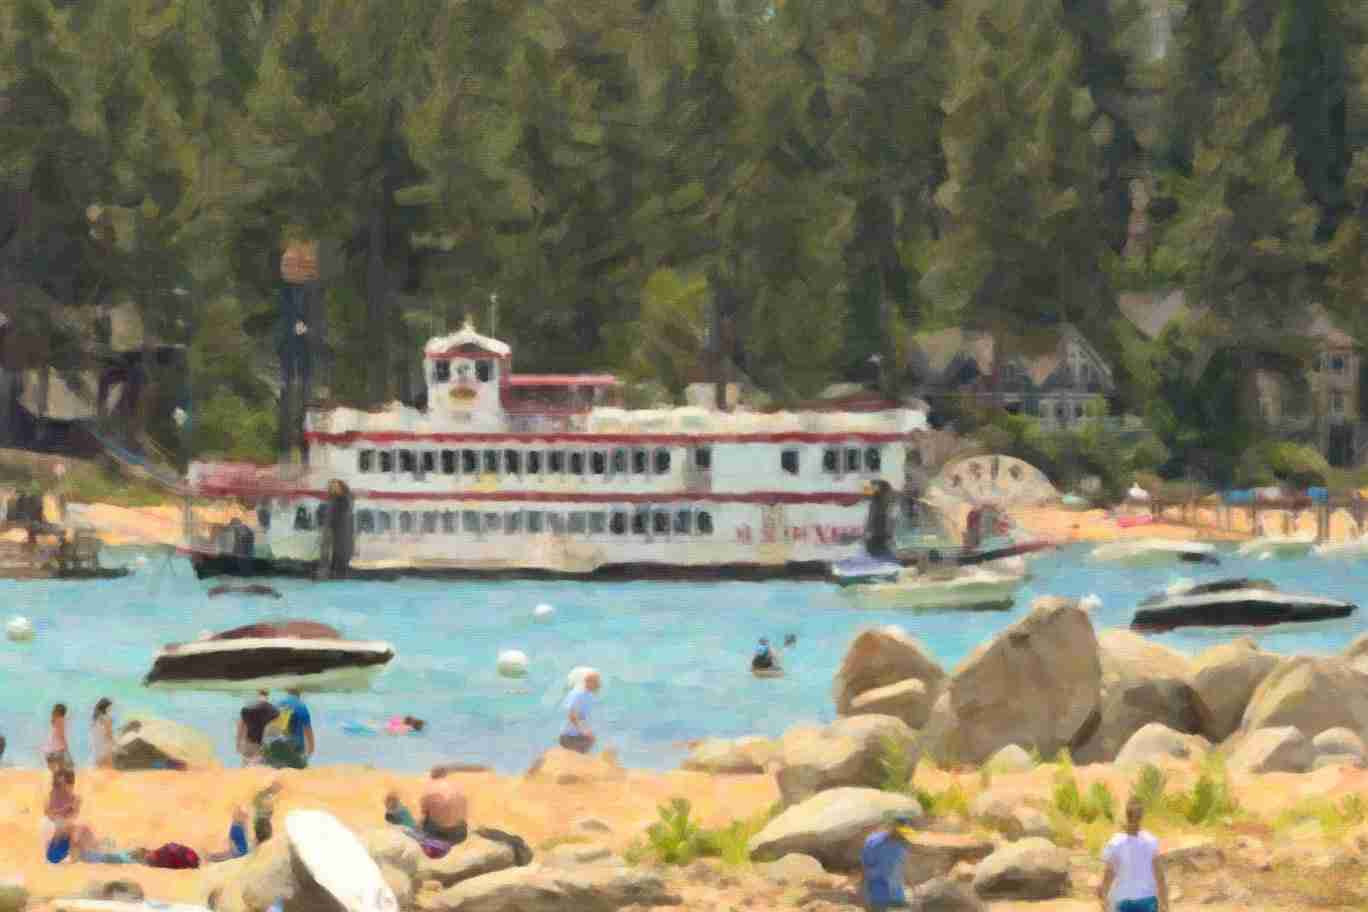 Print of a Summer Day at Lake Tahoe